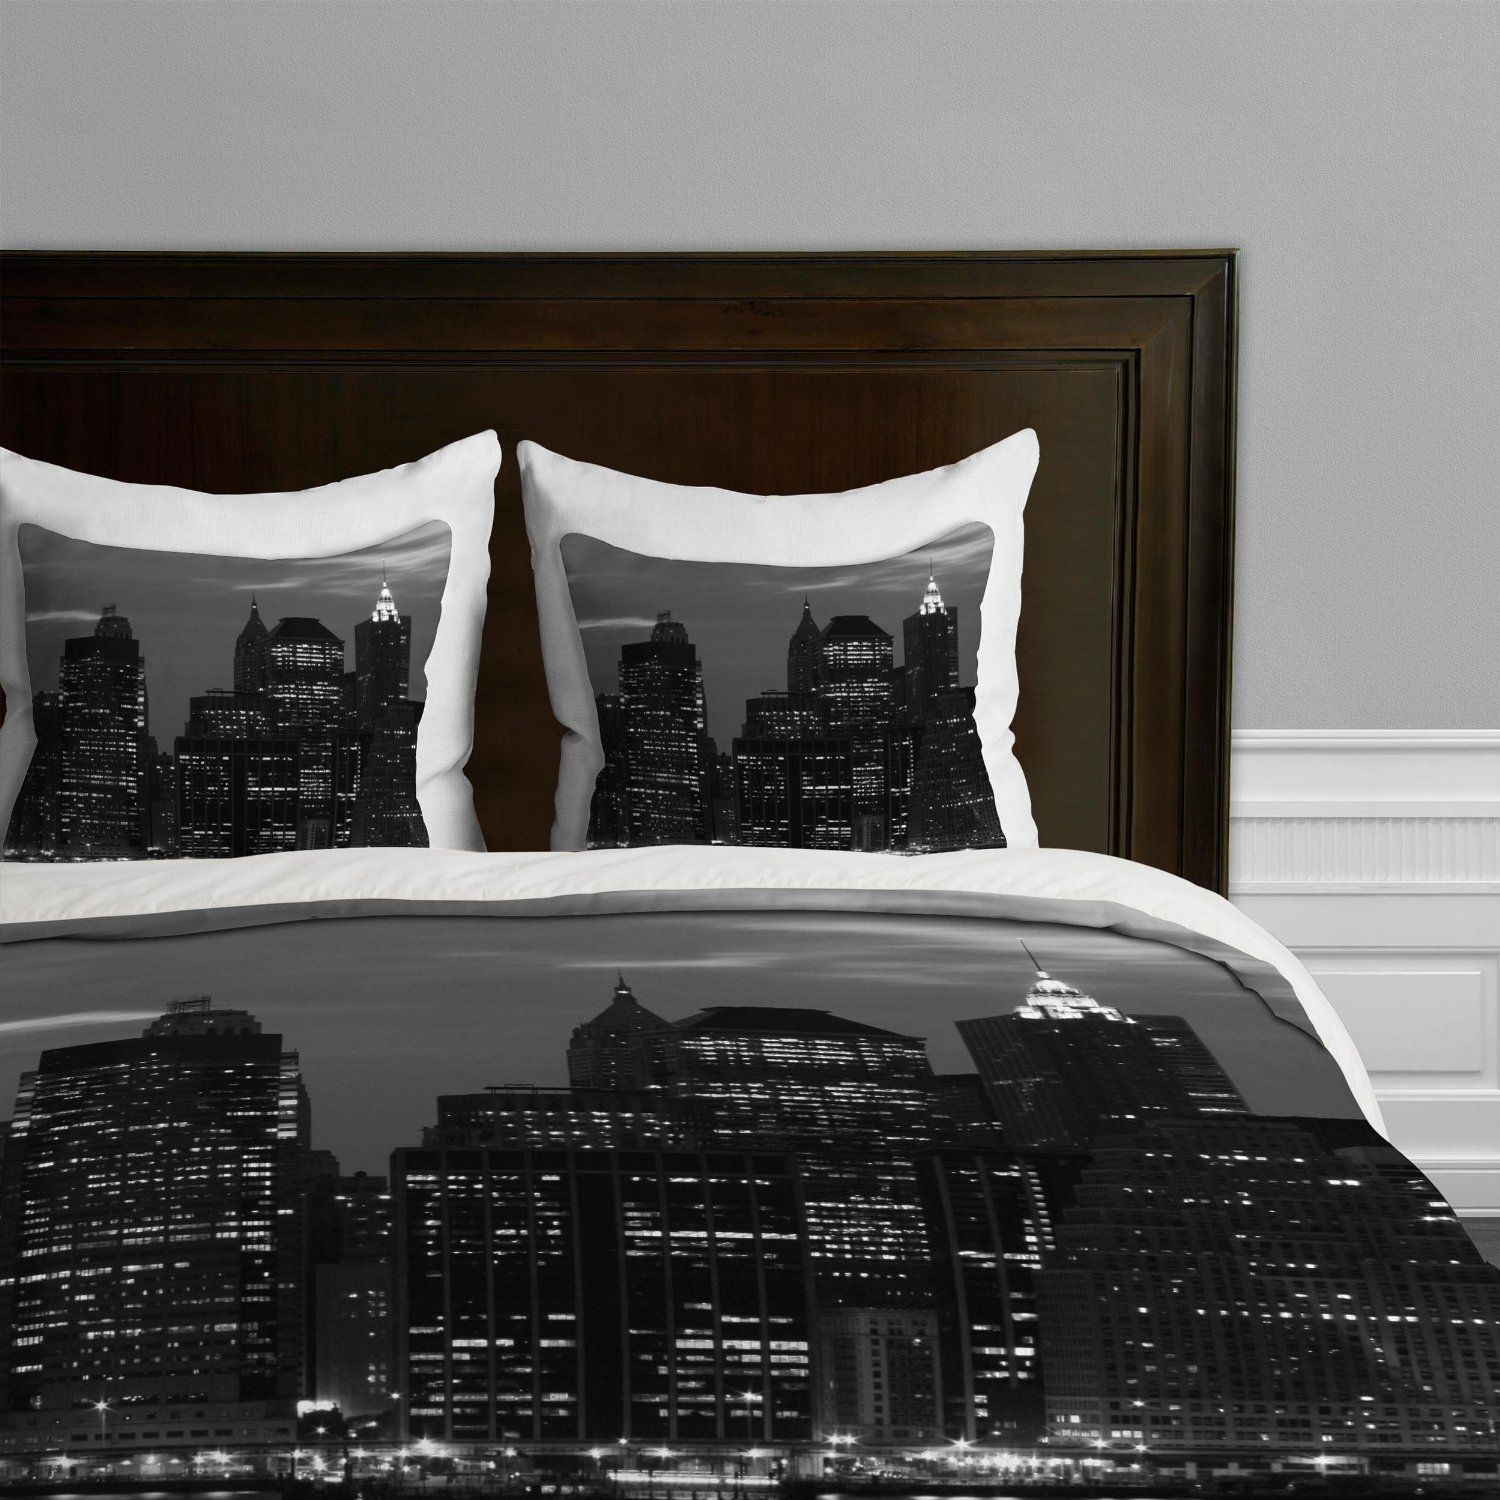 New York Bedroom Ideas New York Skyline Bedding & Nyc Themed Bedroom Ideas  Marissa's